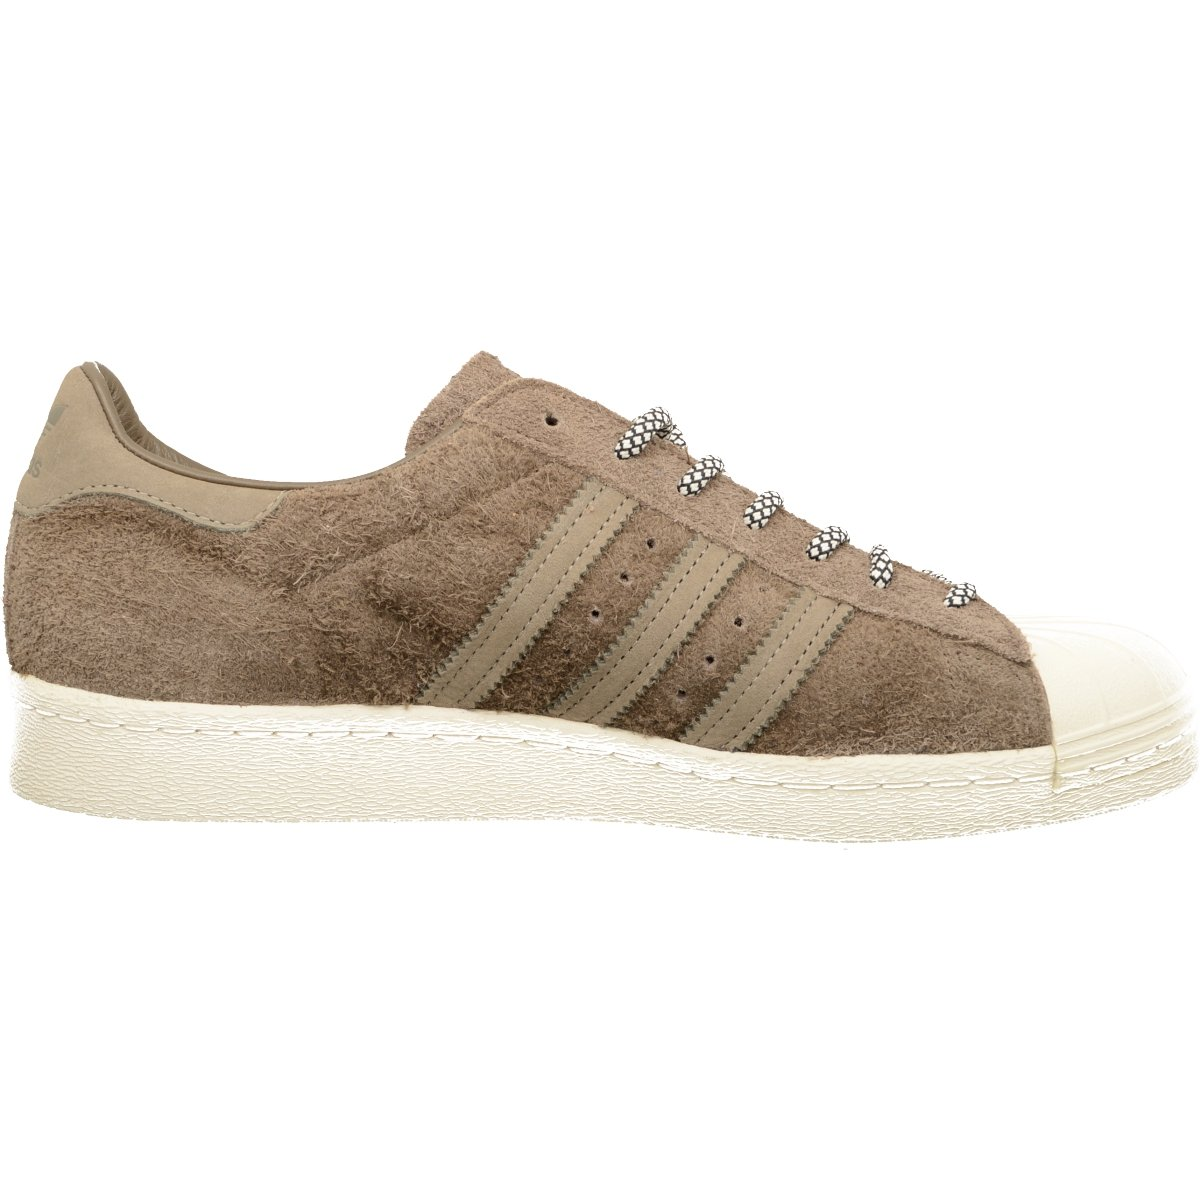 Adidas Originals Superstar 80s Mens S75848 Turnschuhe Schuhe schuhe Mens 80s 79ab30